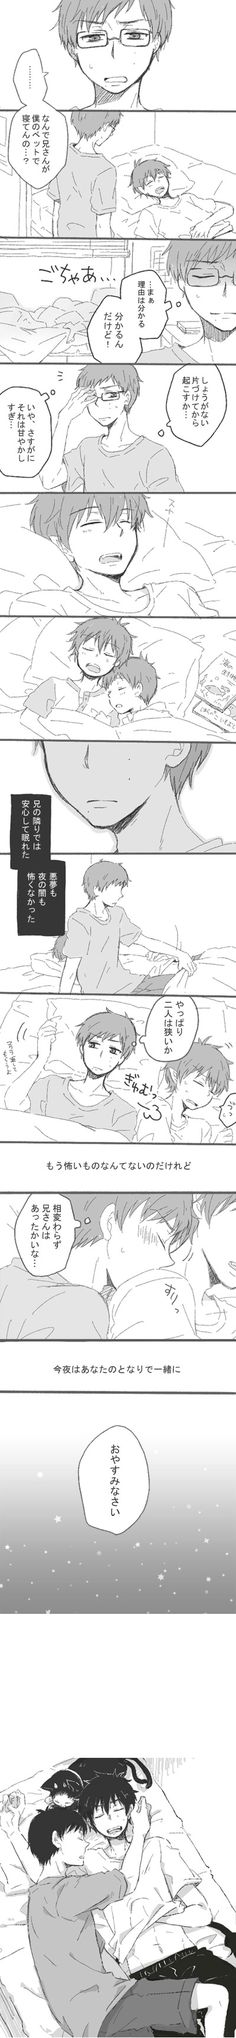 Tags: Anime, Bed, Pillow, T-shirt, Ao no Exorcist, Okumura Rin, Okumura Yukio